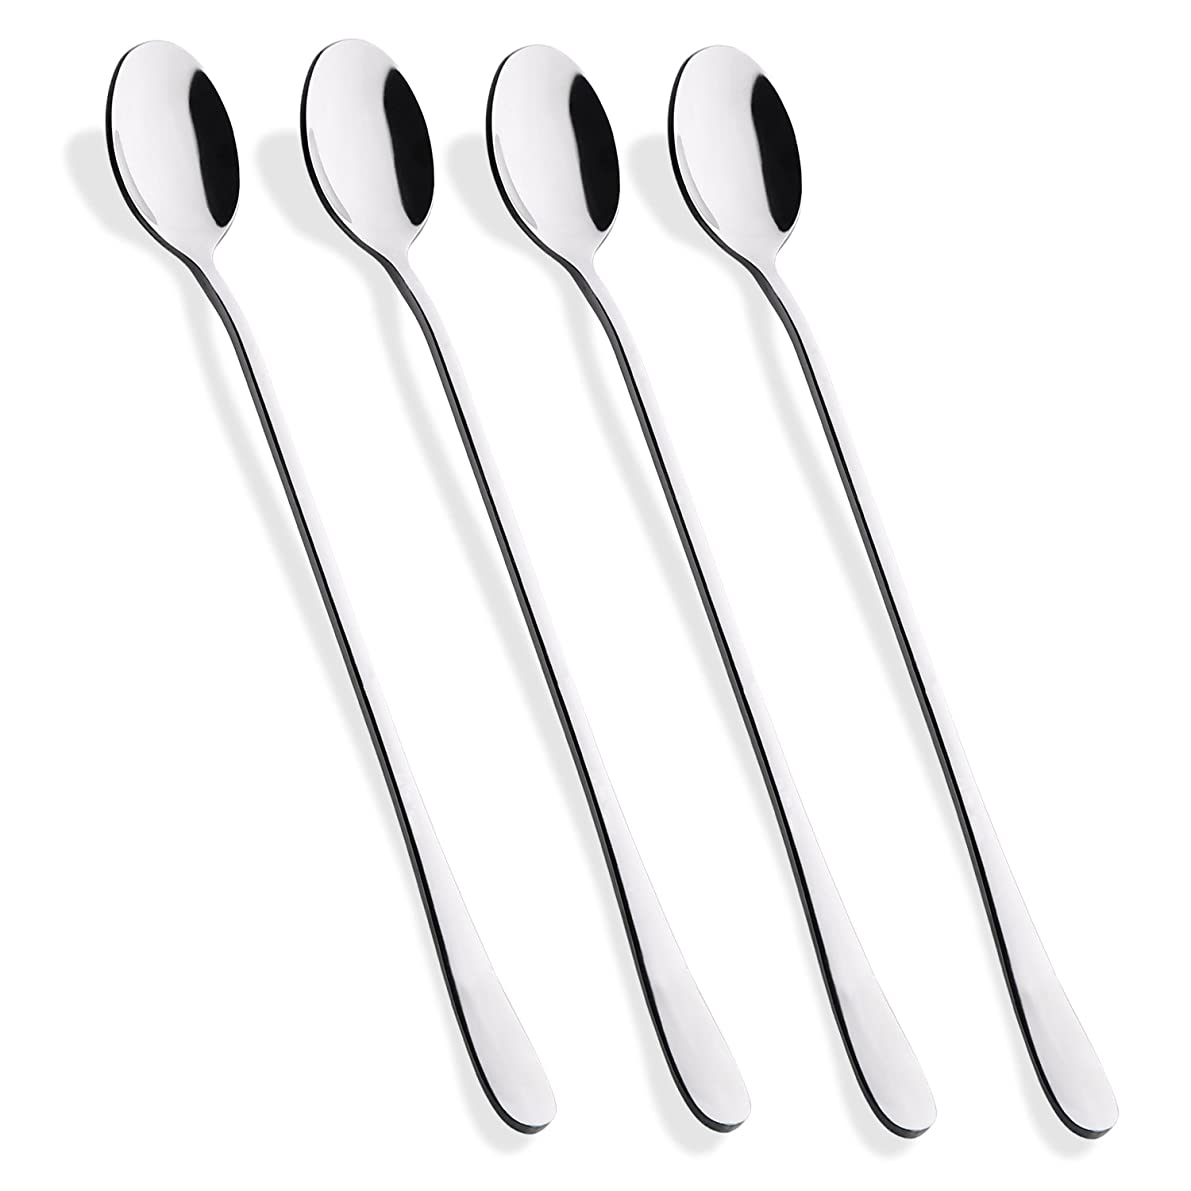 Hiware 9-Inch Long Handle Iced Tea Spoon, Coffee Spoon, Ice Cream Spoon, Stainless Steel Cocktail Stirring Spoons, Set of 4